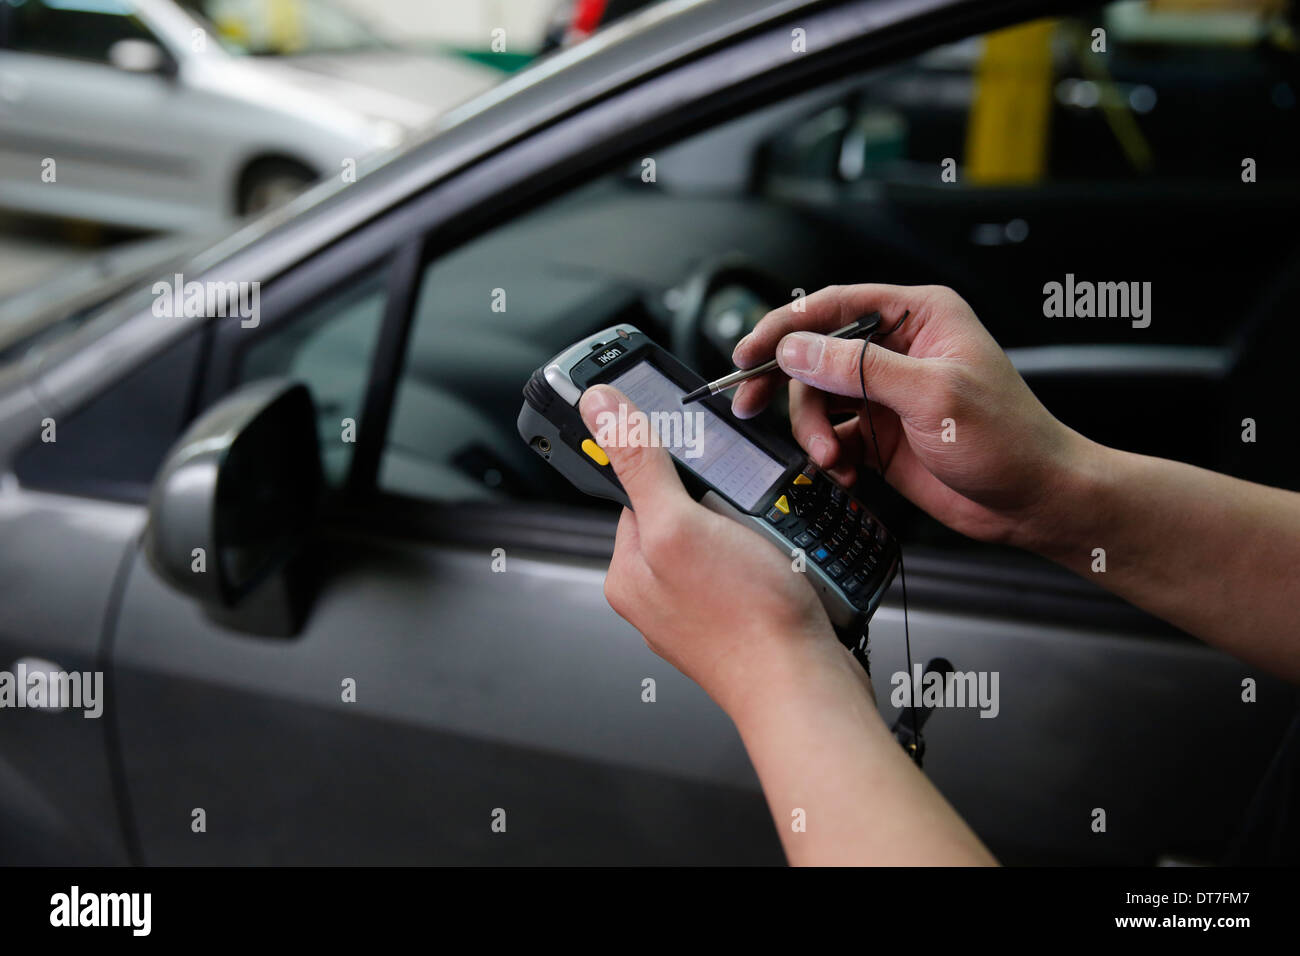 Vehicle test (compulsory technical check) - Stock Image